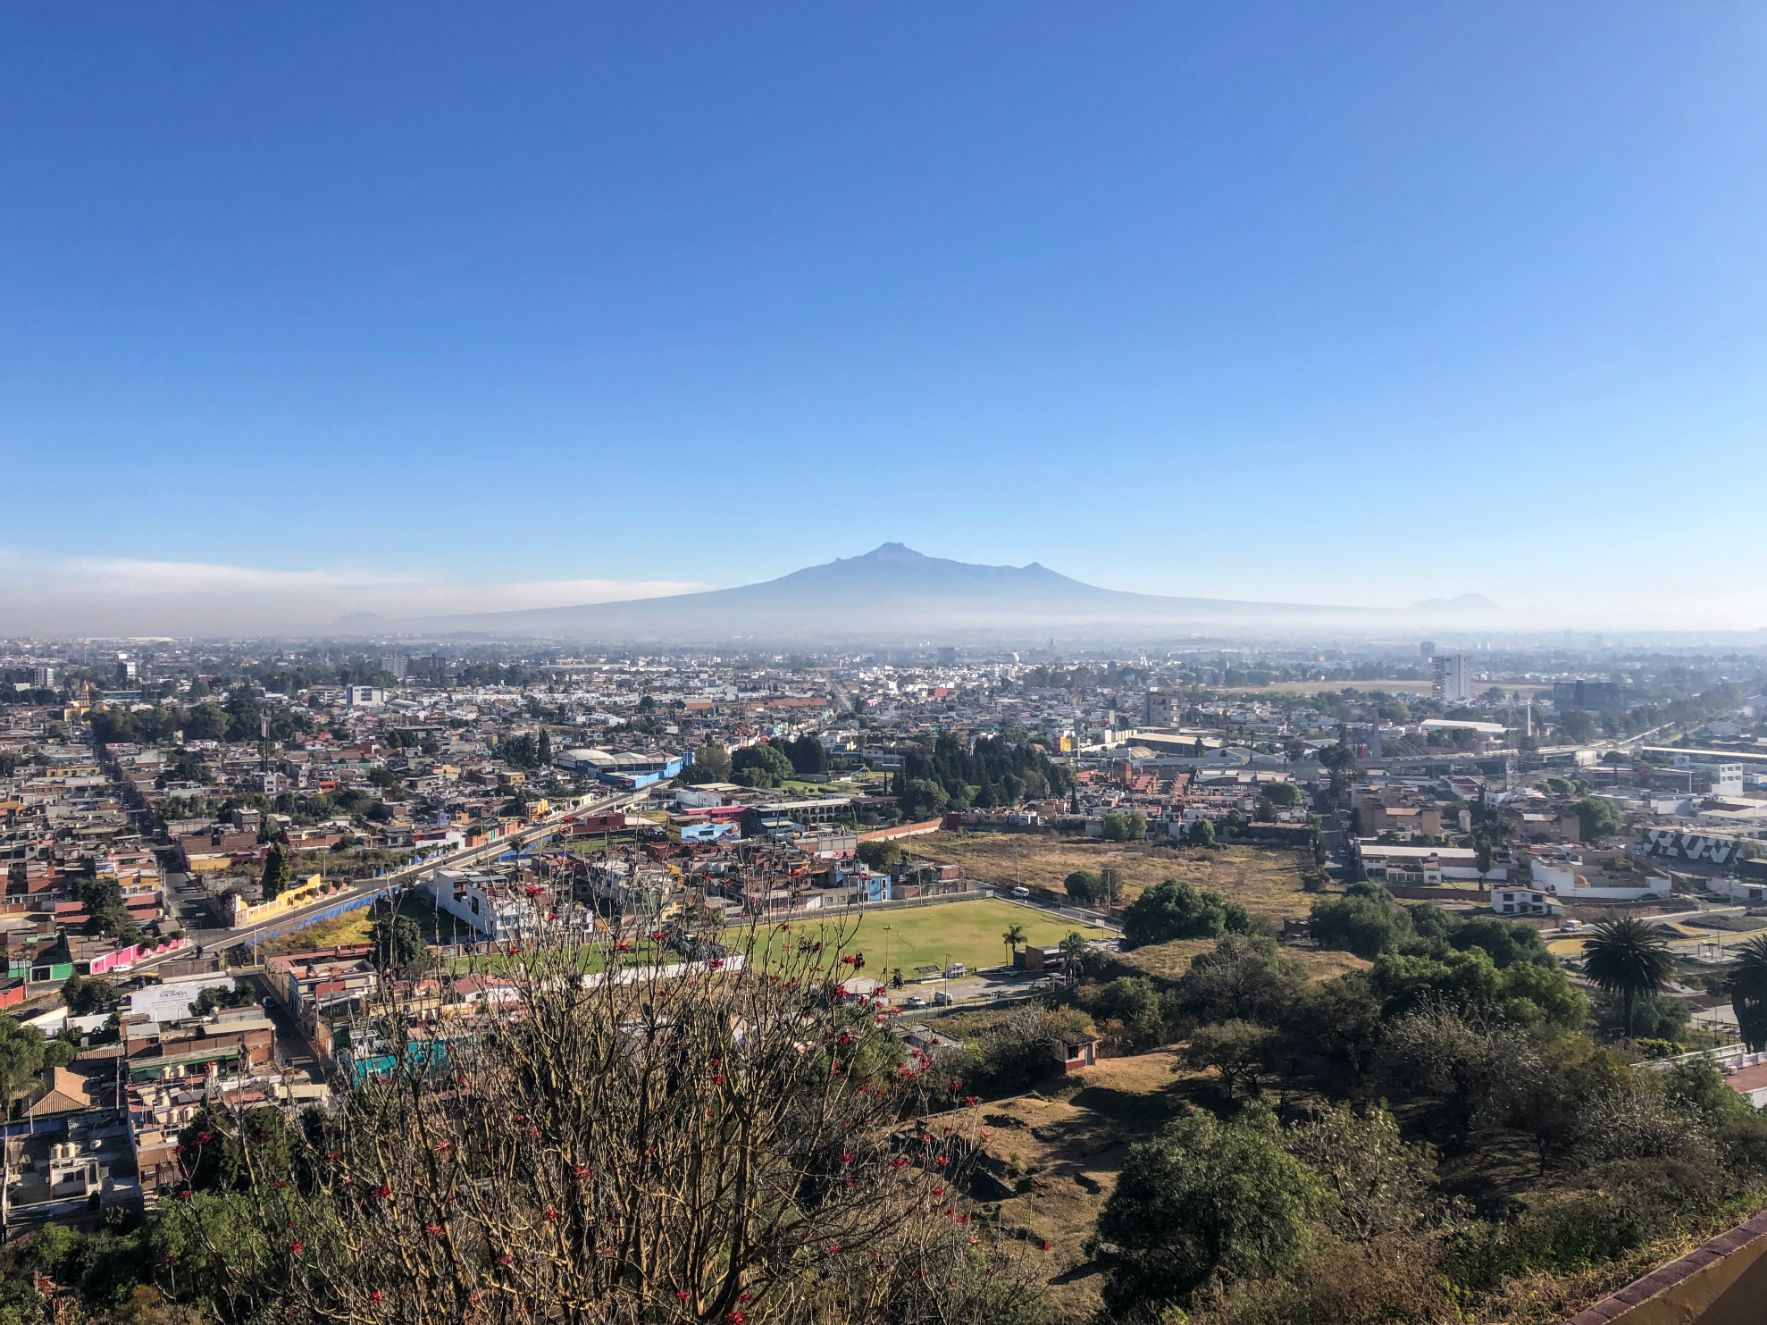 Aerial view of Puebla, Mexico with morning mist and a mountain in the background